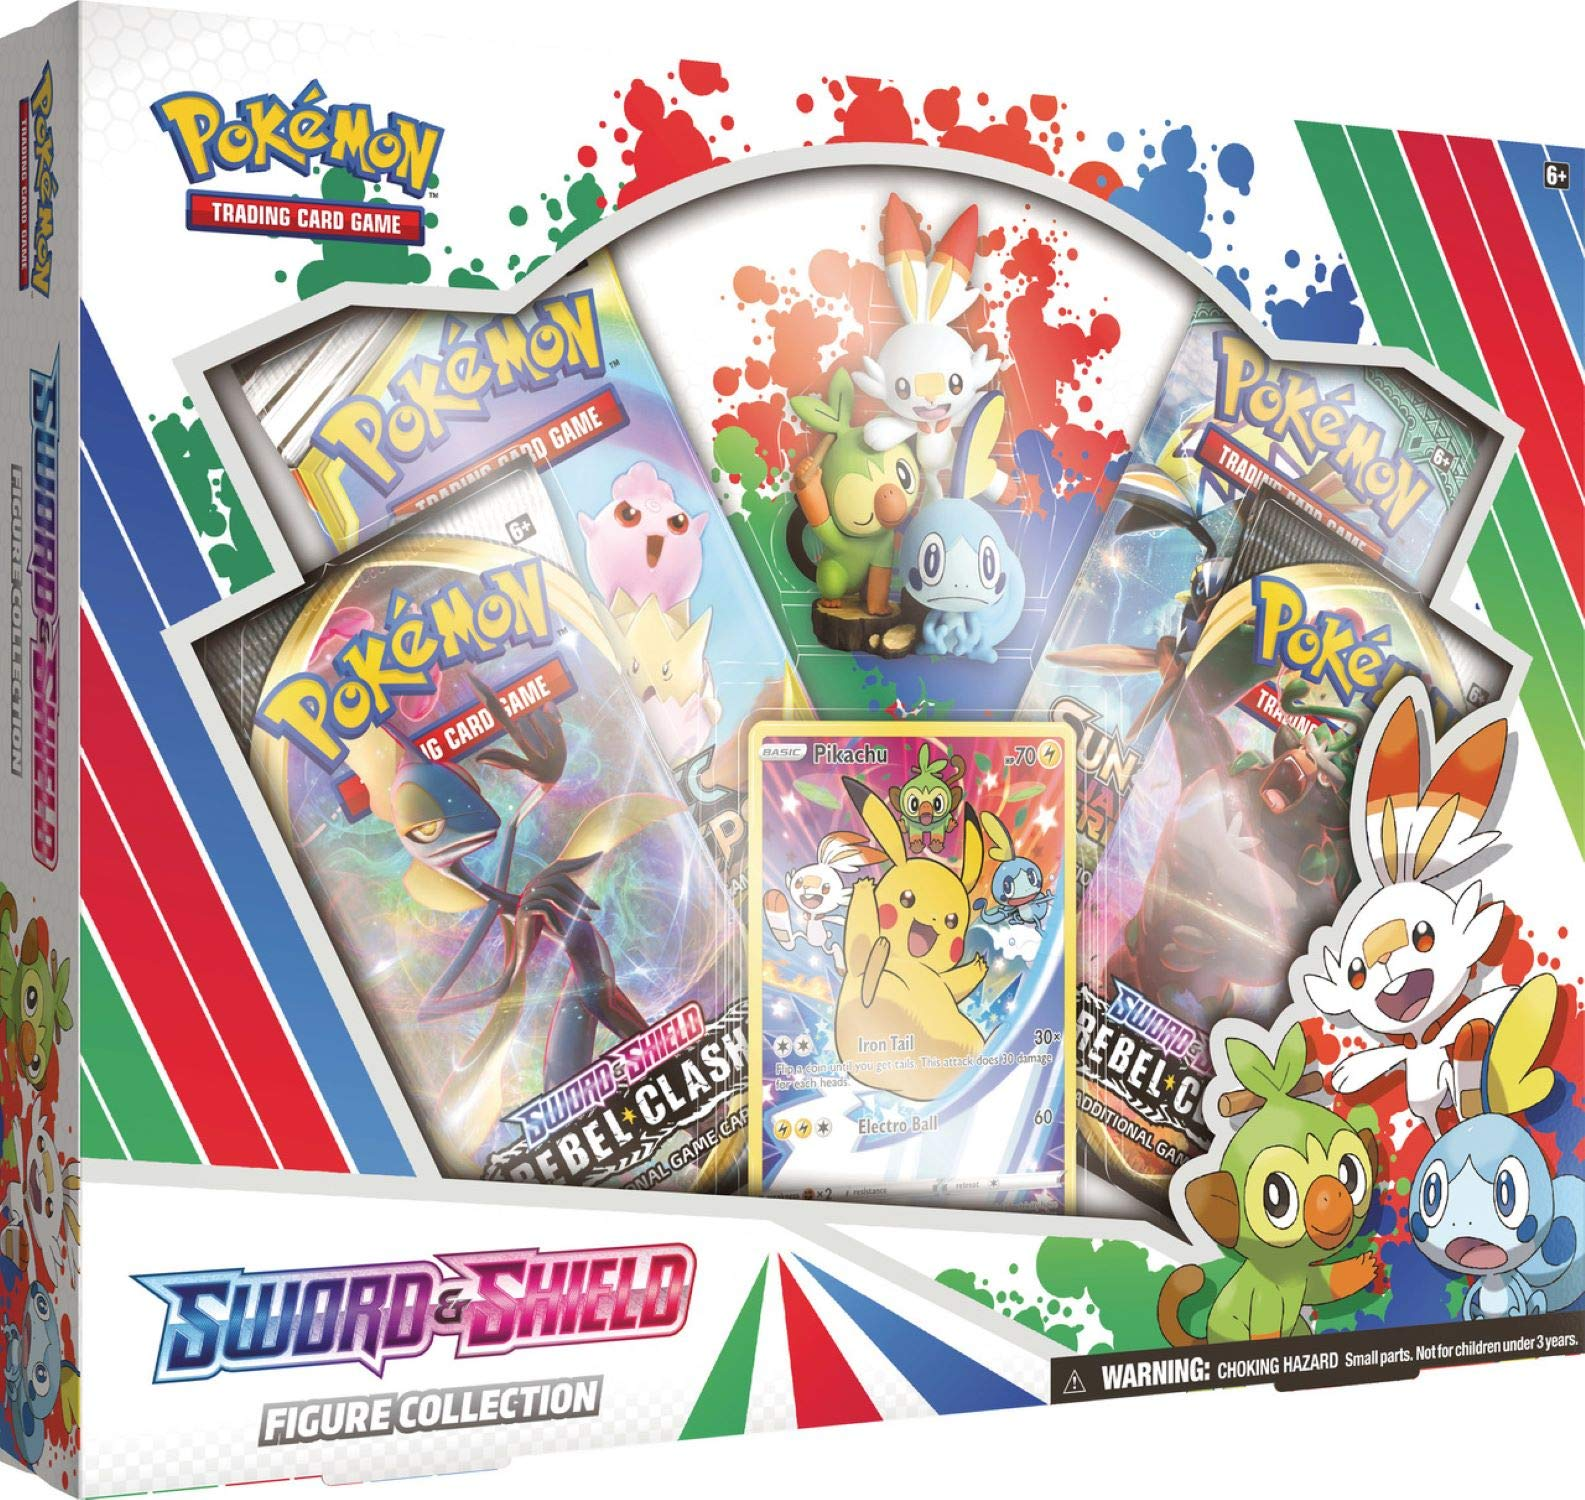 Pokemon TCG: Sword & Shield Figure Collection | 4 Booster Packs | 1 Full-Art foil Card Featuring Pikachu | Genuine Cards